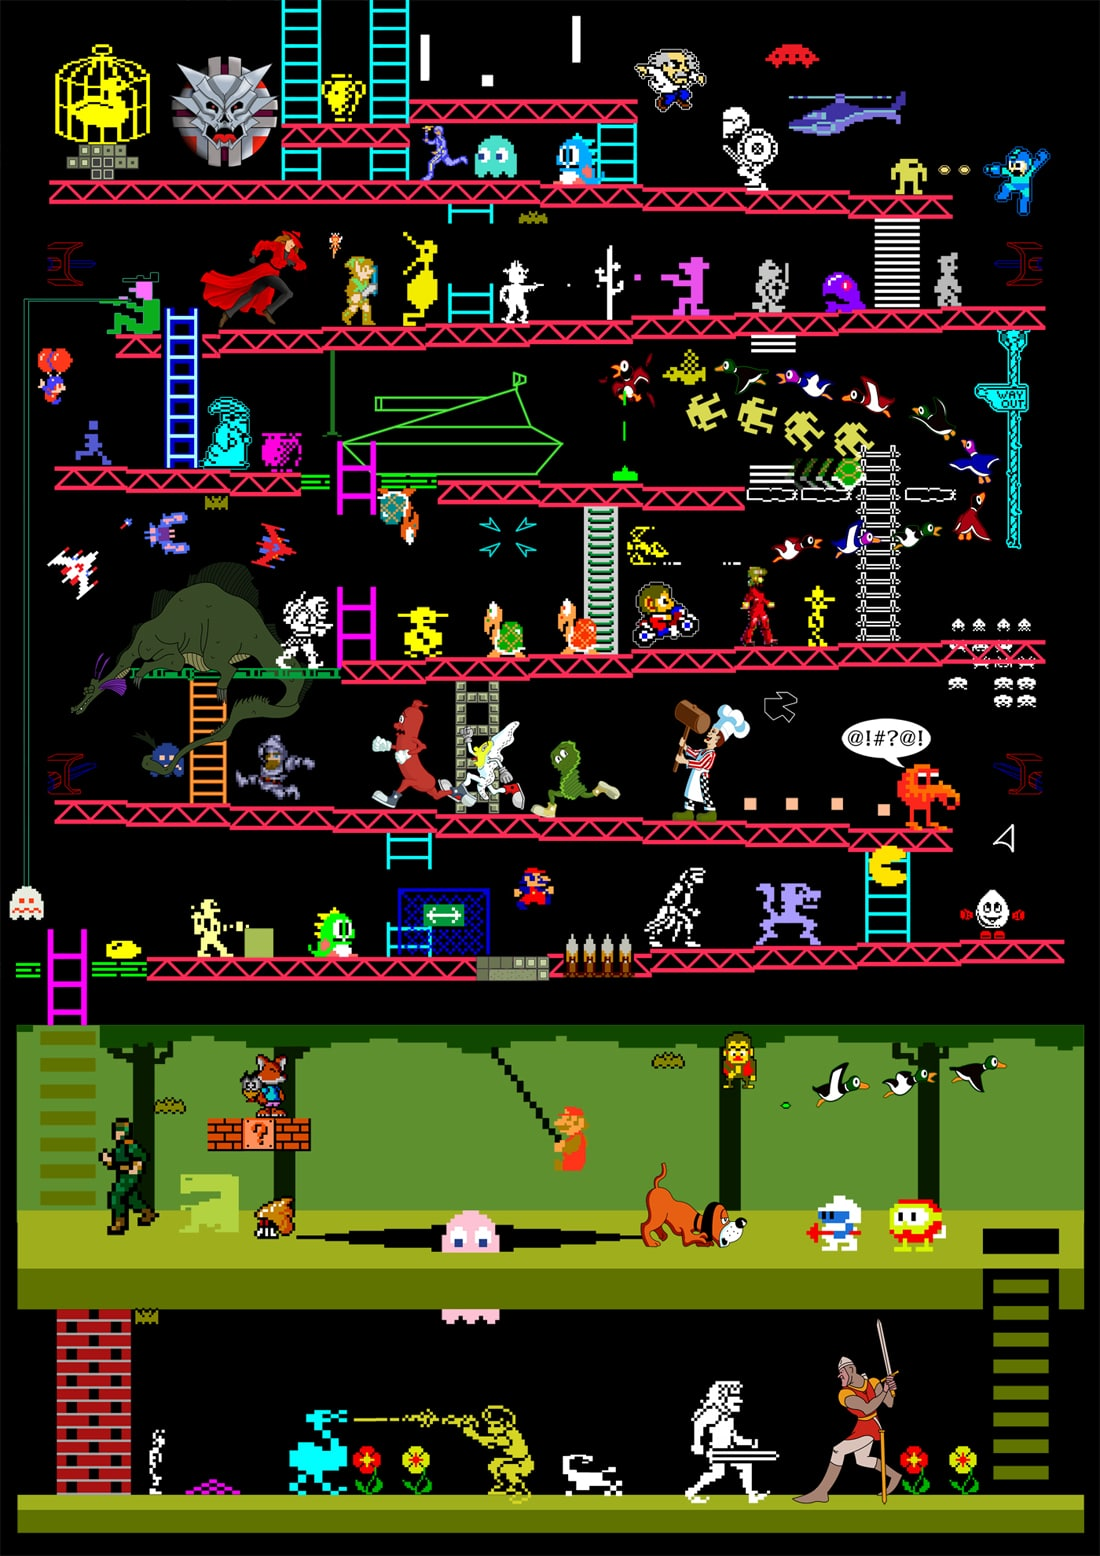 Retro-80s-Arcade-Games-Illustration